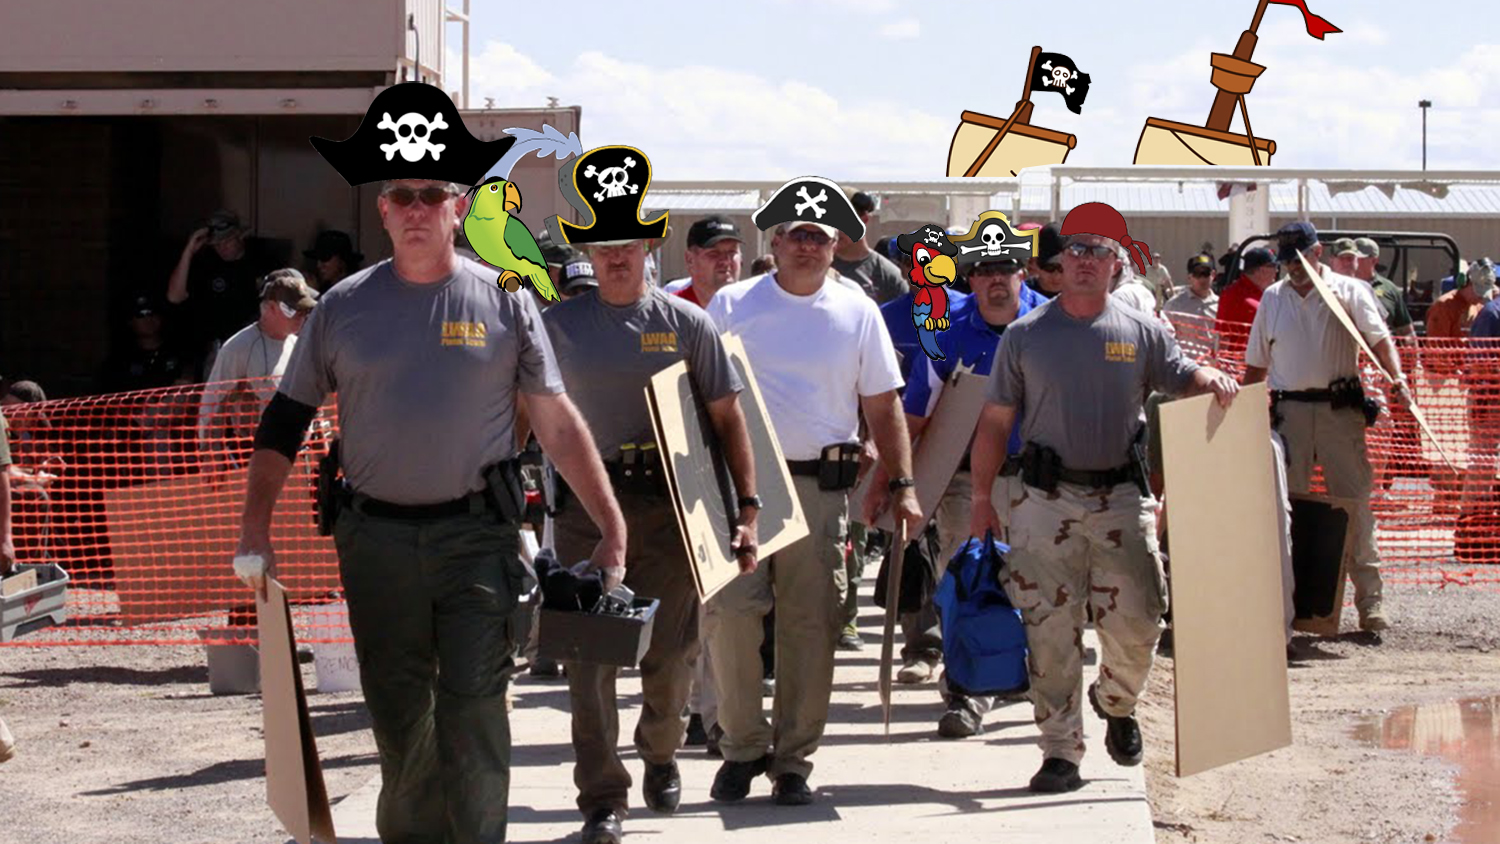 Yarr! We're Settin' Sail Fer Th' National Police Shooting Championships We Are